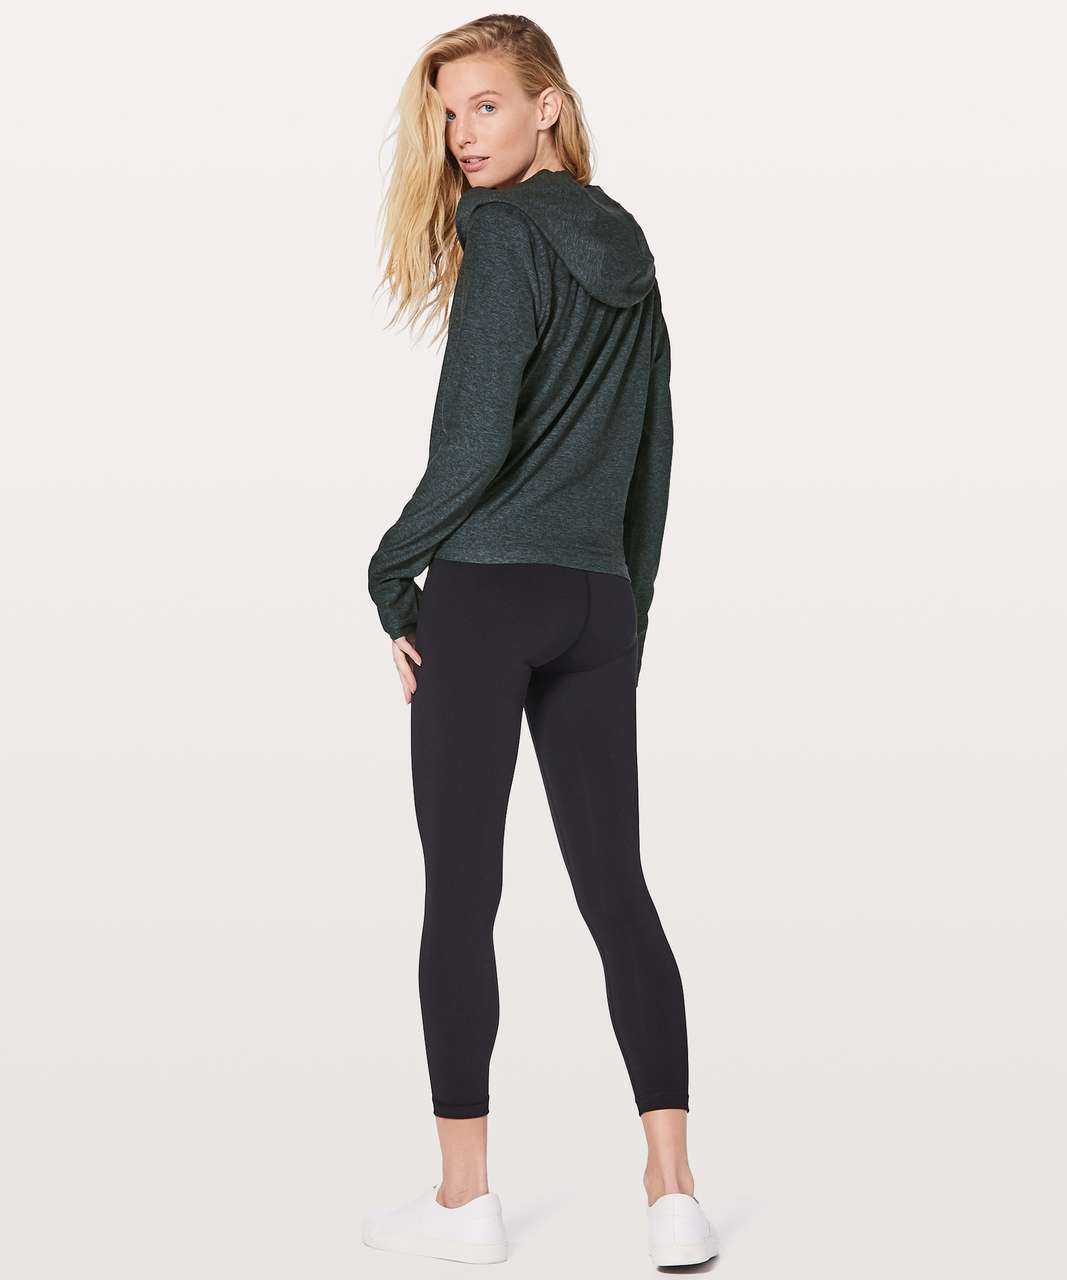 Lululemon Ready To Rulu Wrap - Heathered Nocturnal Teal / Black